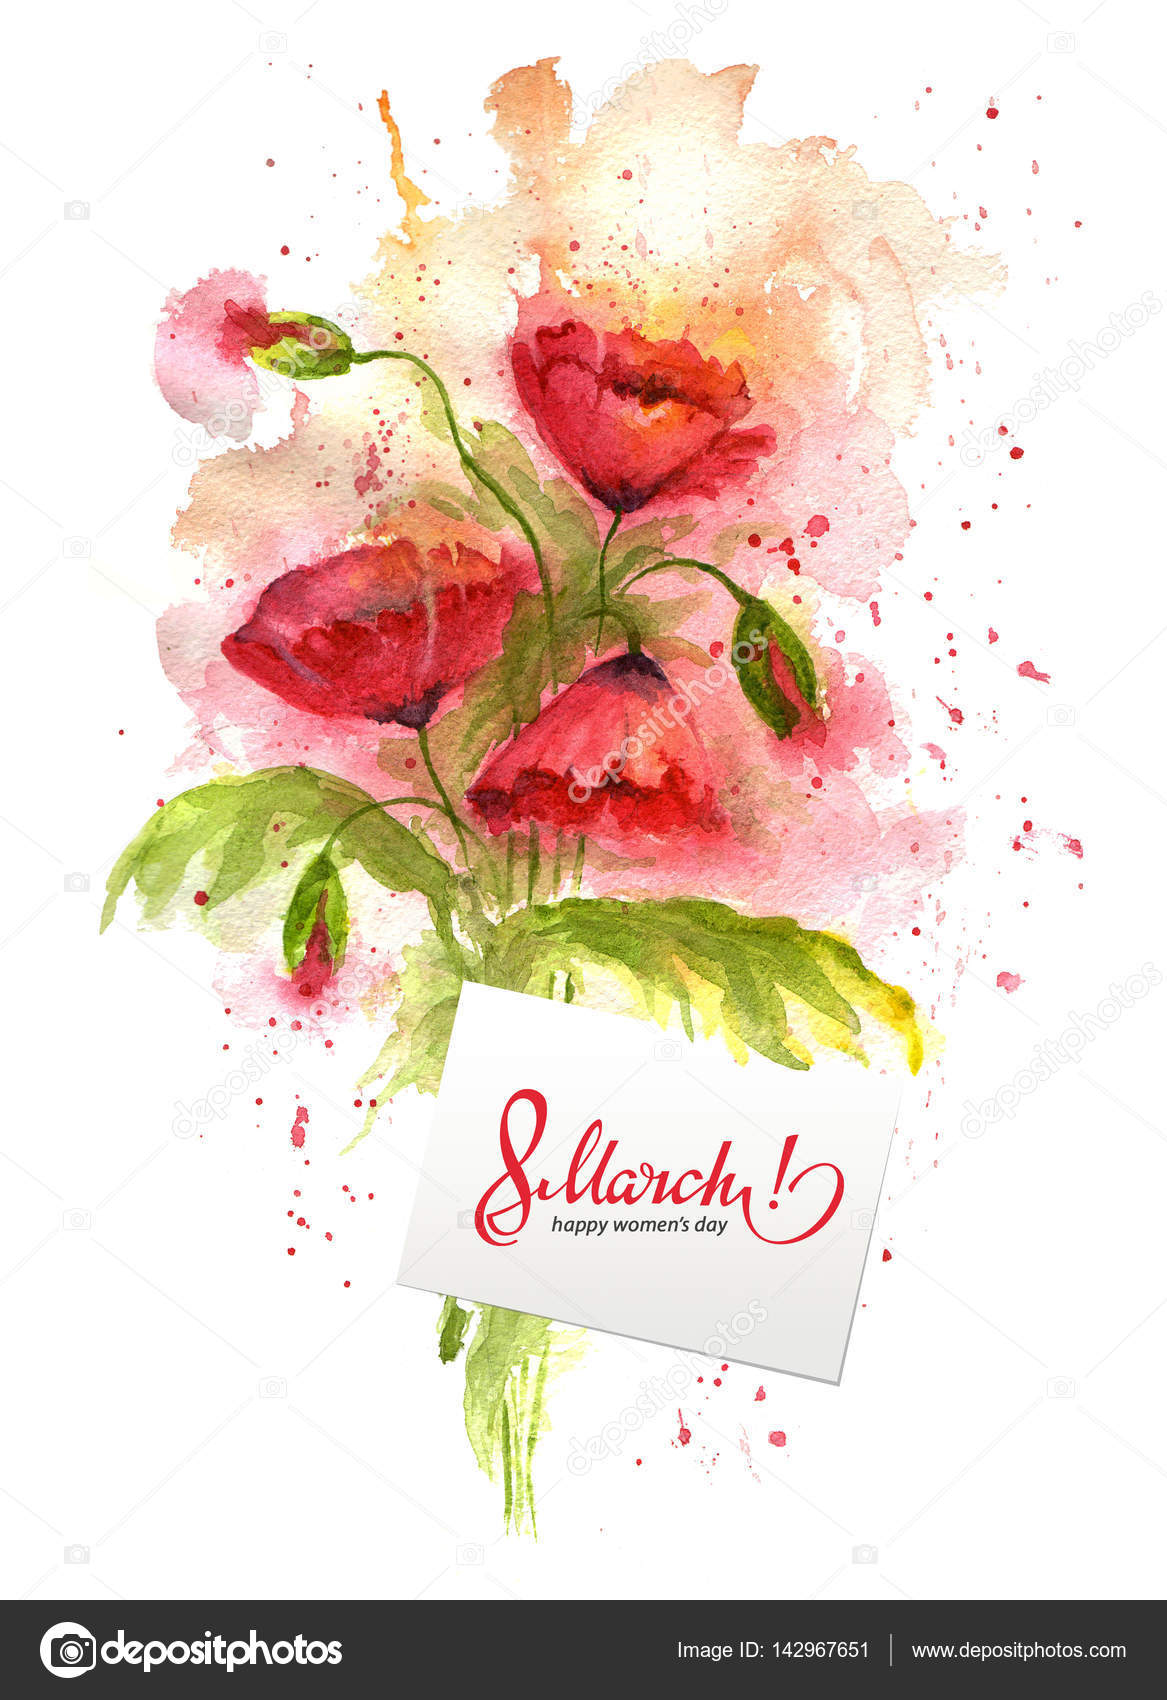 Watercolor greeting card 8 march with red poppy flowers stock watercolor greeting card 8 march with red poppy flowers stock photo kristyandbryce Images